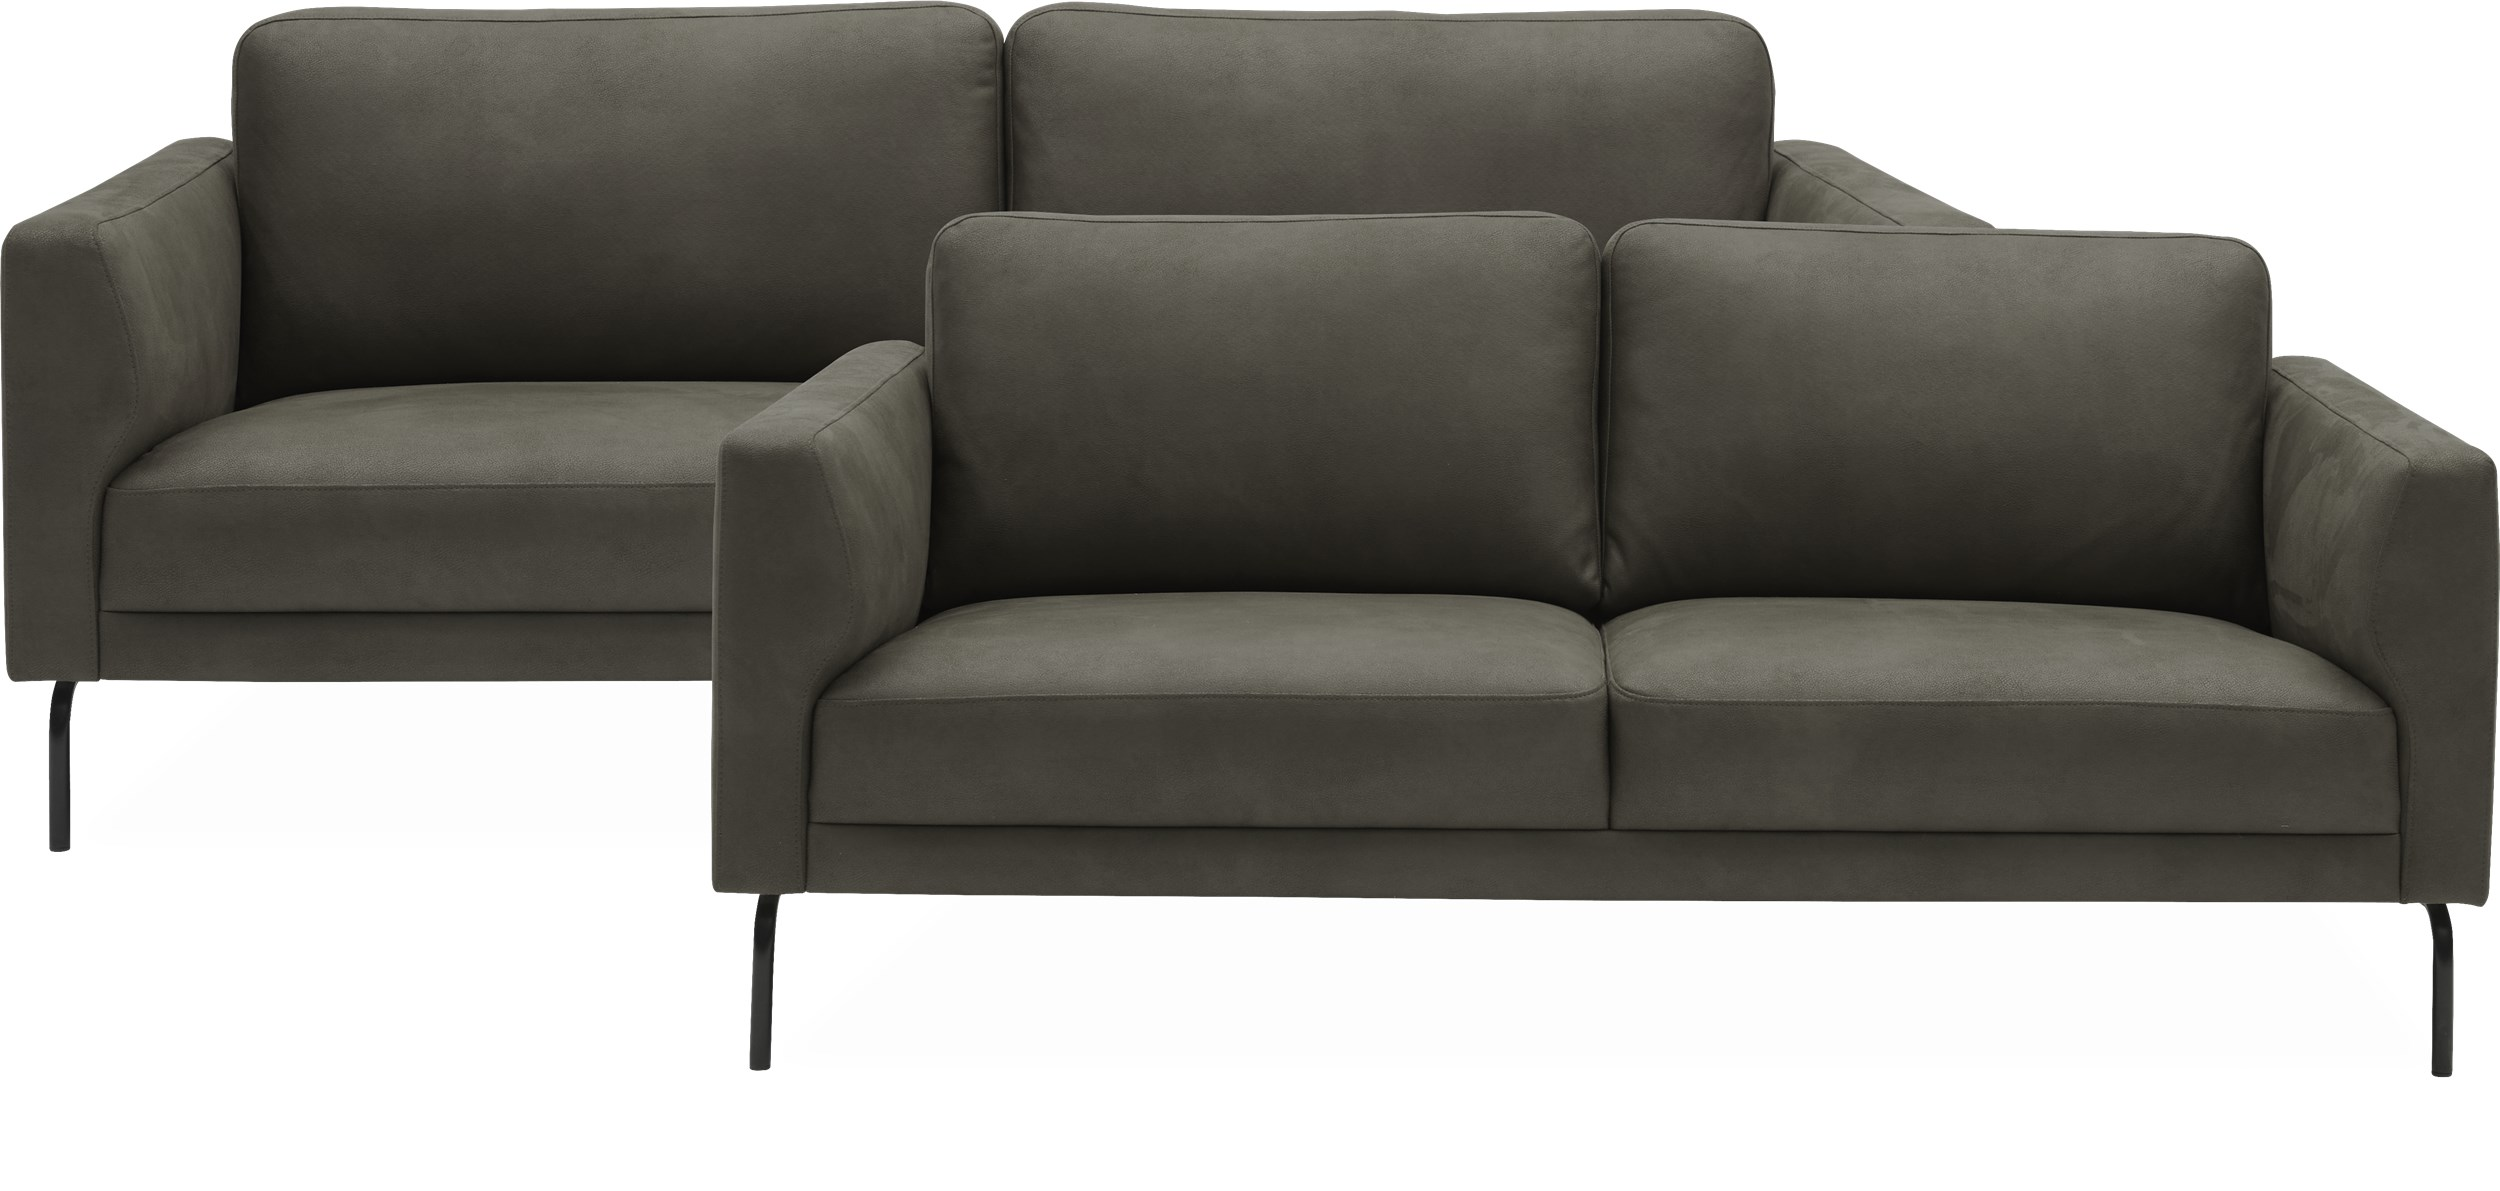 Springfield 3 pers Sofa